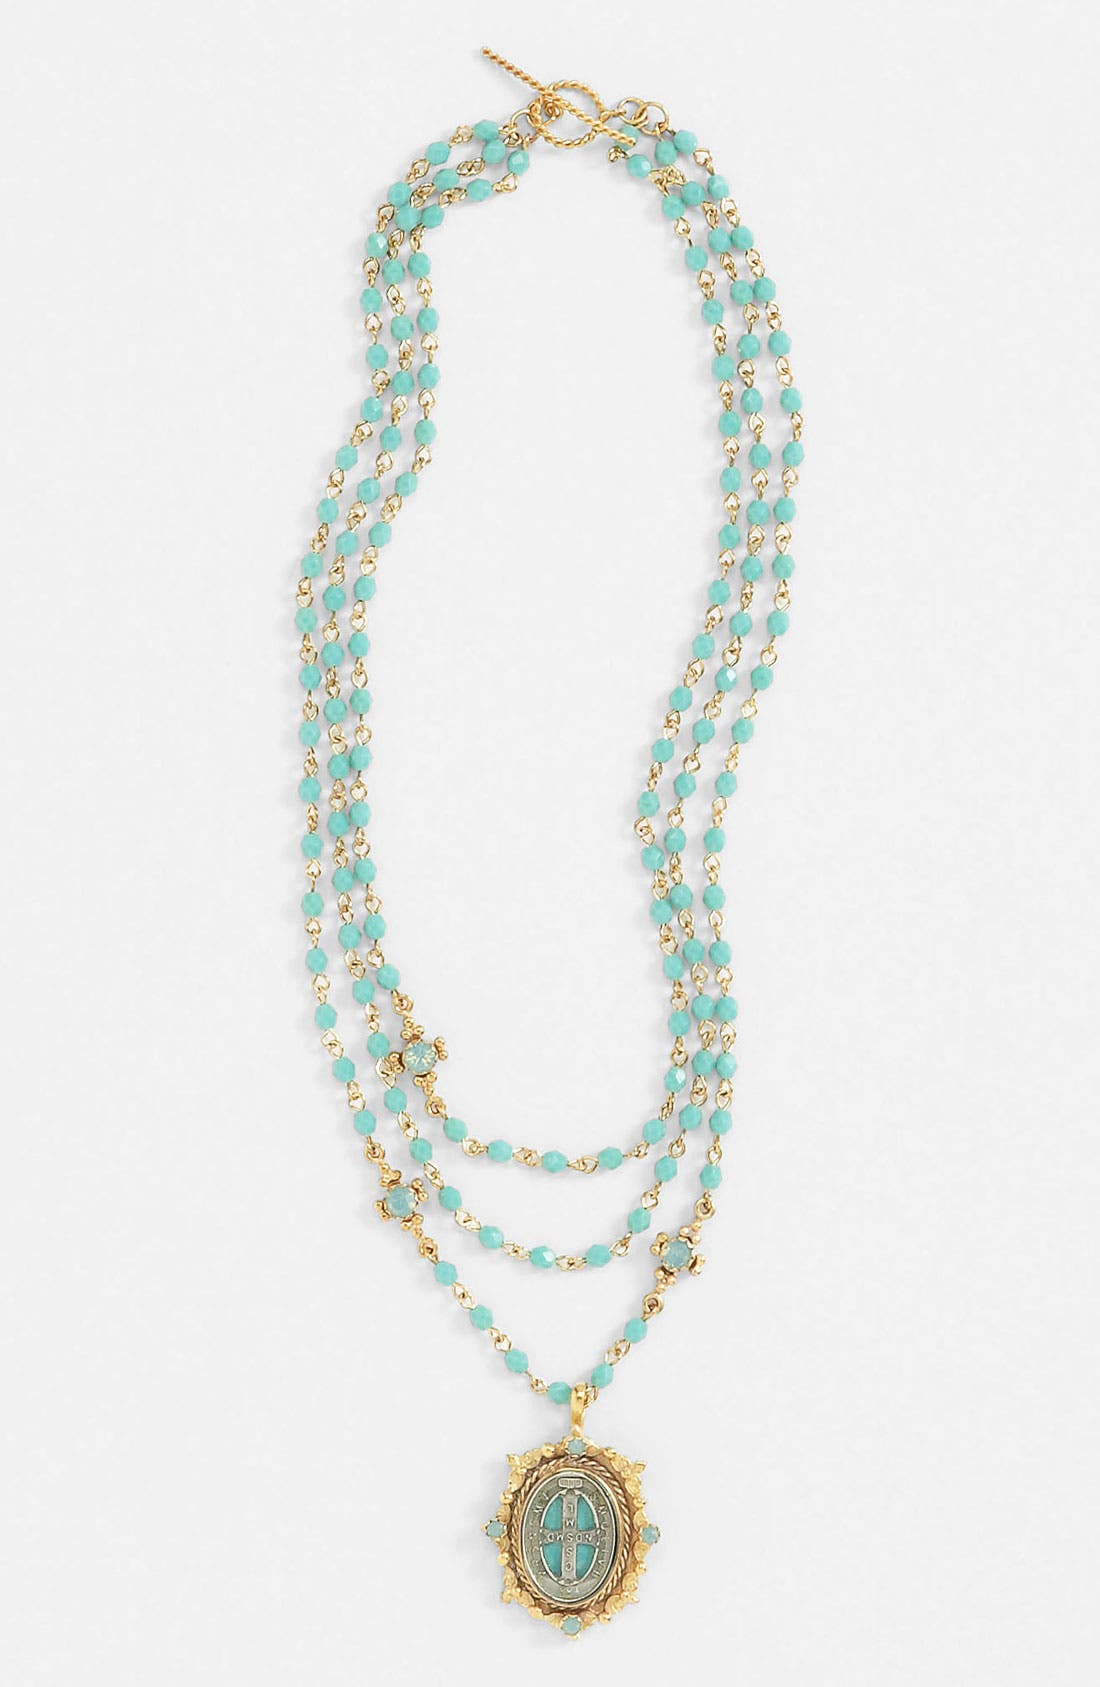 Main Image - Virgins Saints & Angels 'Oval Magdalena' Necklace (Nordstrom Exclusive)